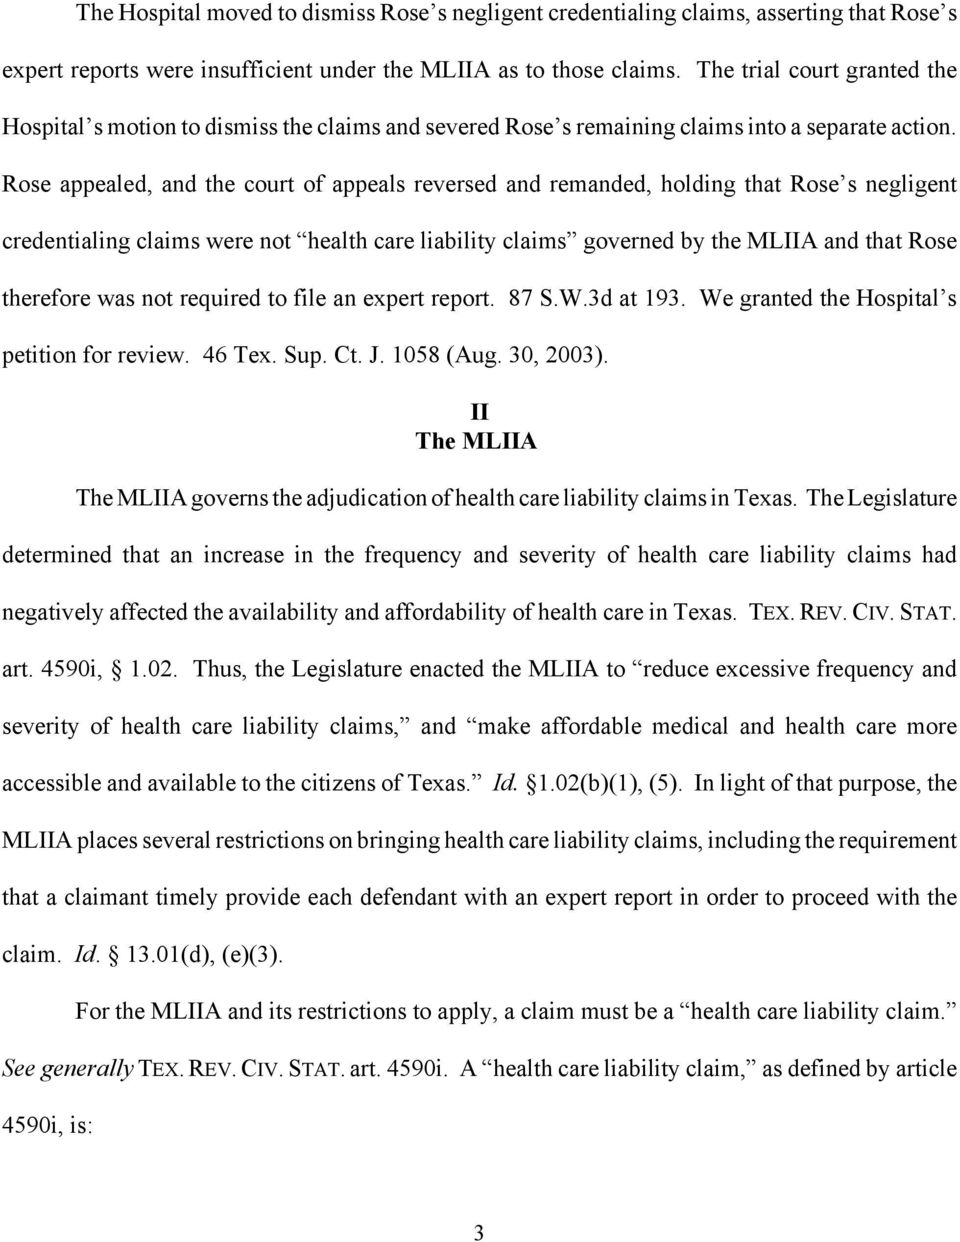 Rose appealed, and the court of appeals reversed and remanded, holding that Rose s negligent credentialing claims were not health care liability claims governed by the MLIIA and that Rose therefore